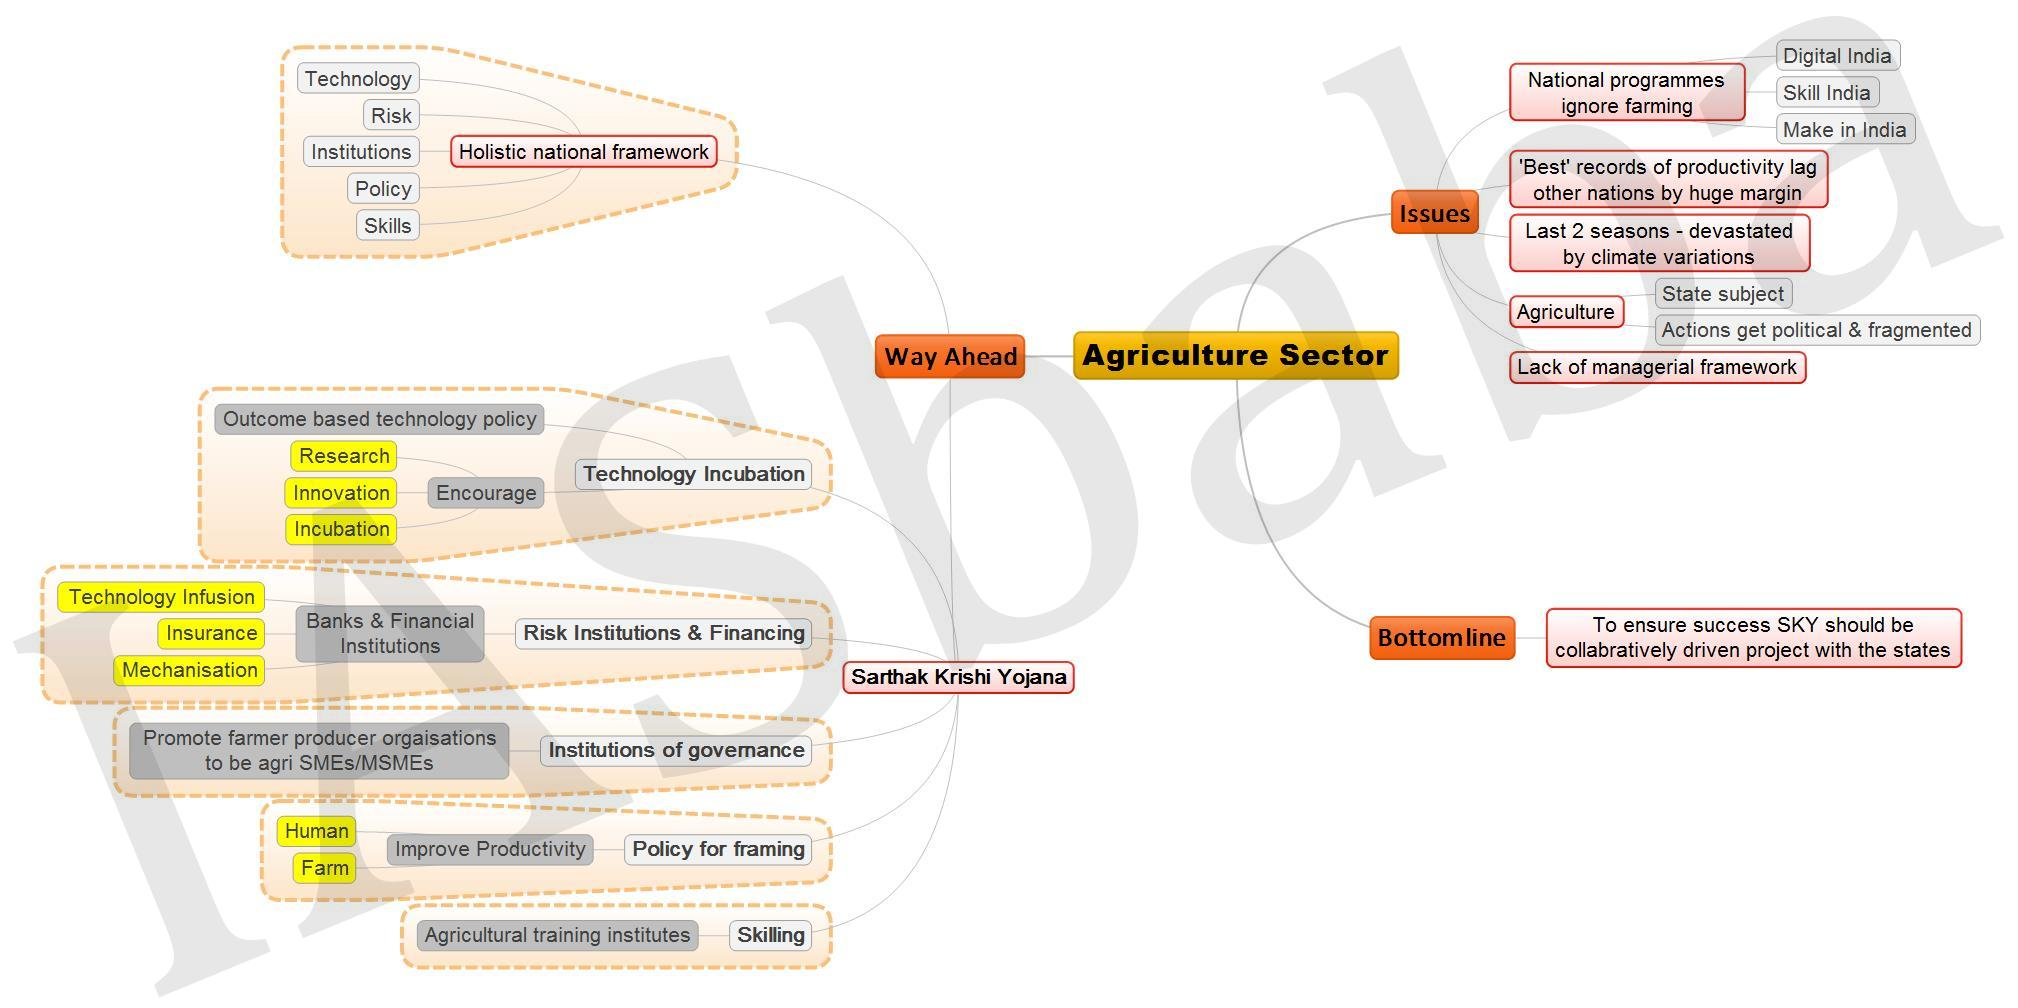 Agriculture Sector JPEG